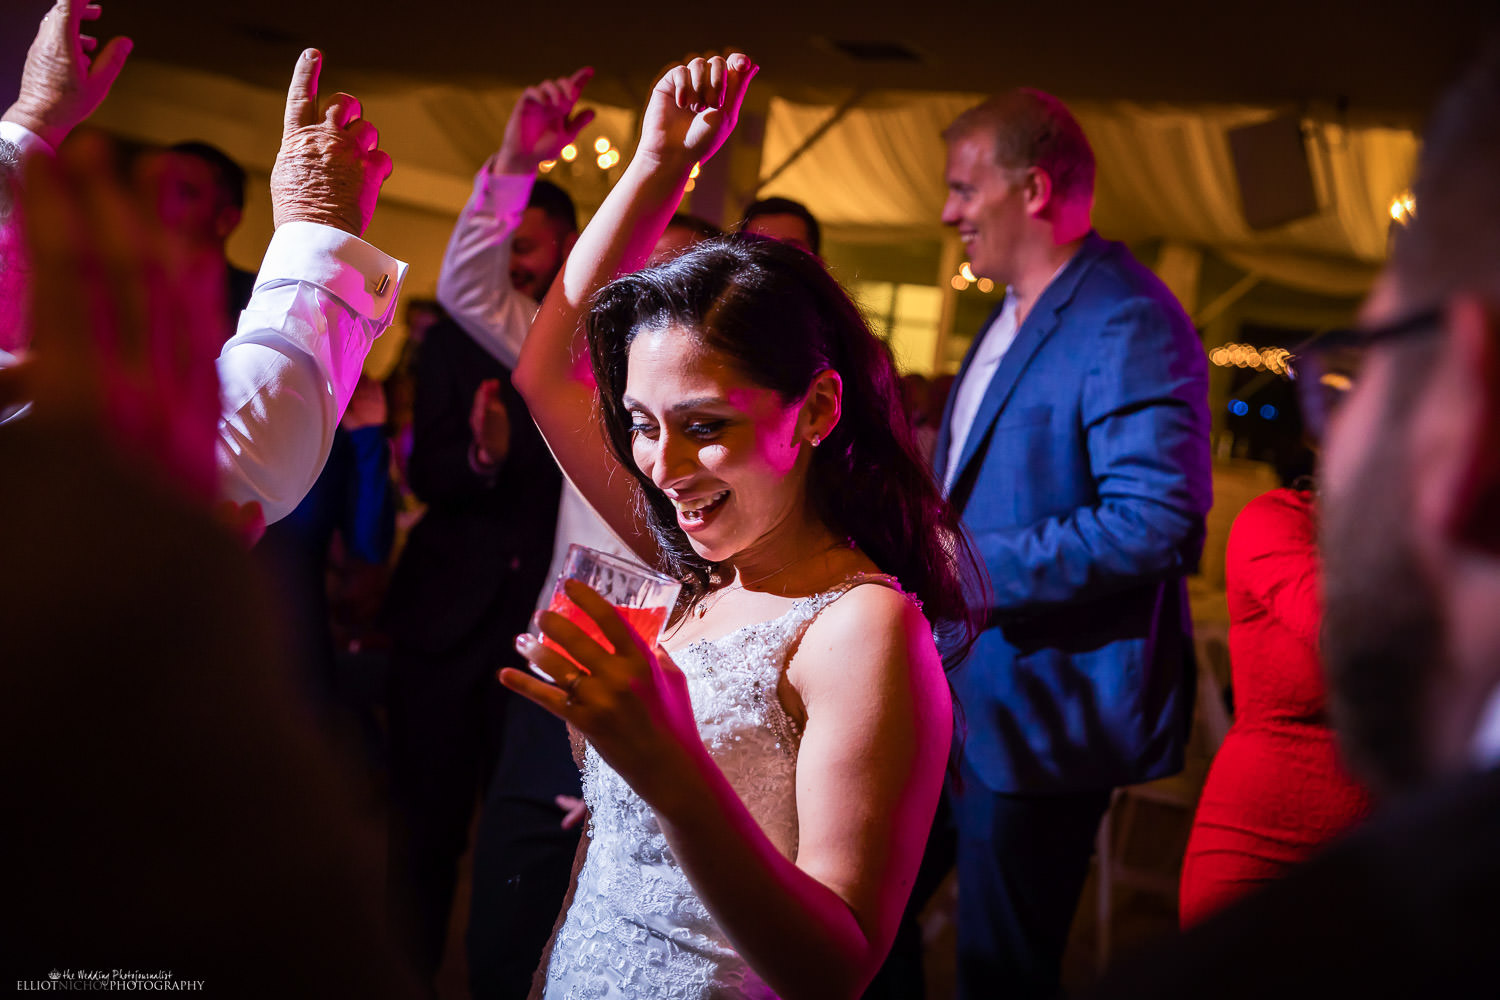 Bride dancing on the dance floor during her wedding reception. Photo by Elliot Nichol Photography.